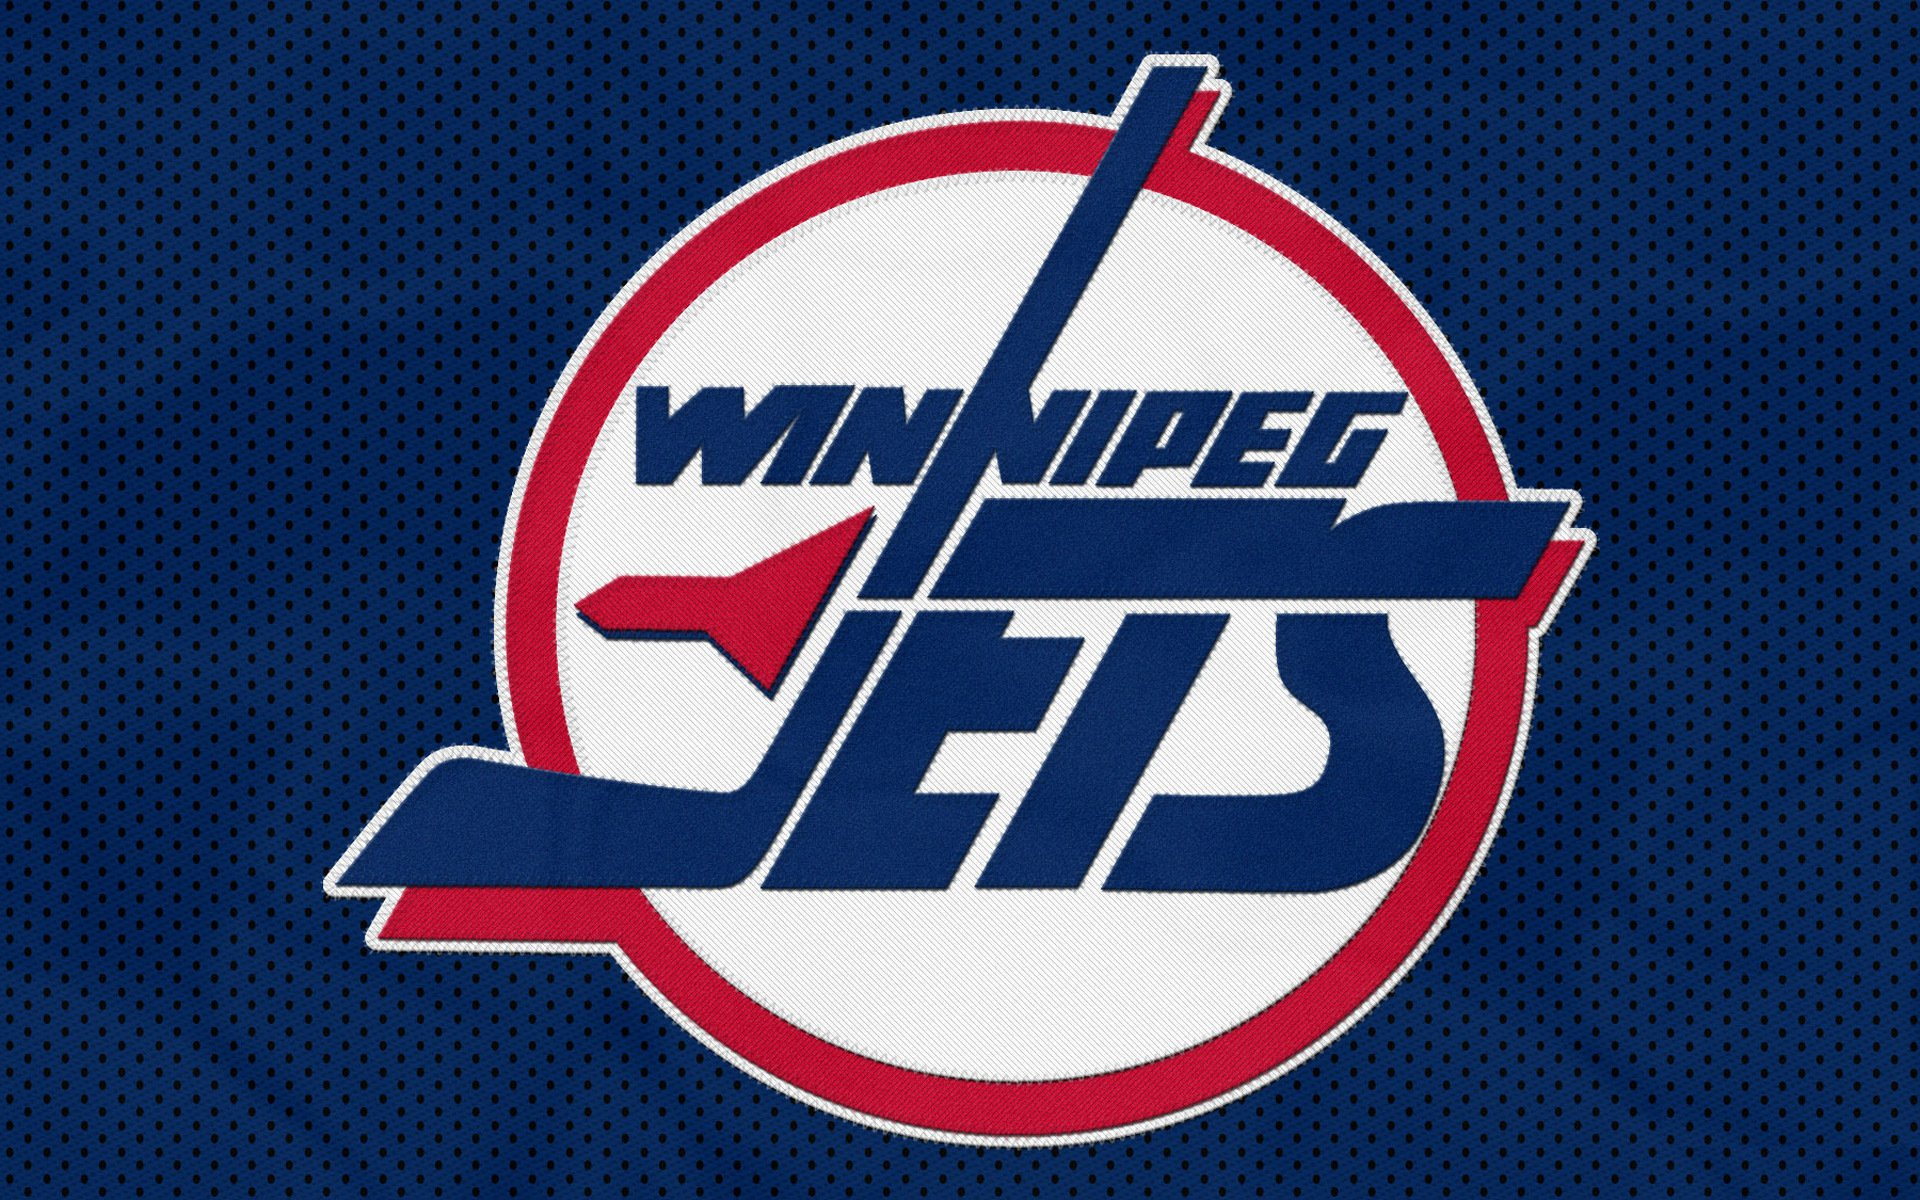 Winnipeg Jets Wallpapers Widescreen KMNSC43   4USkY 1920x1200